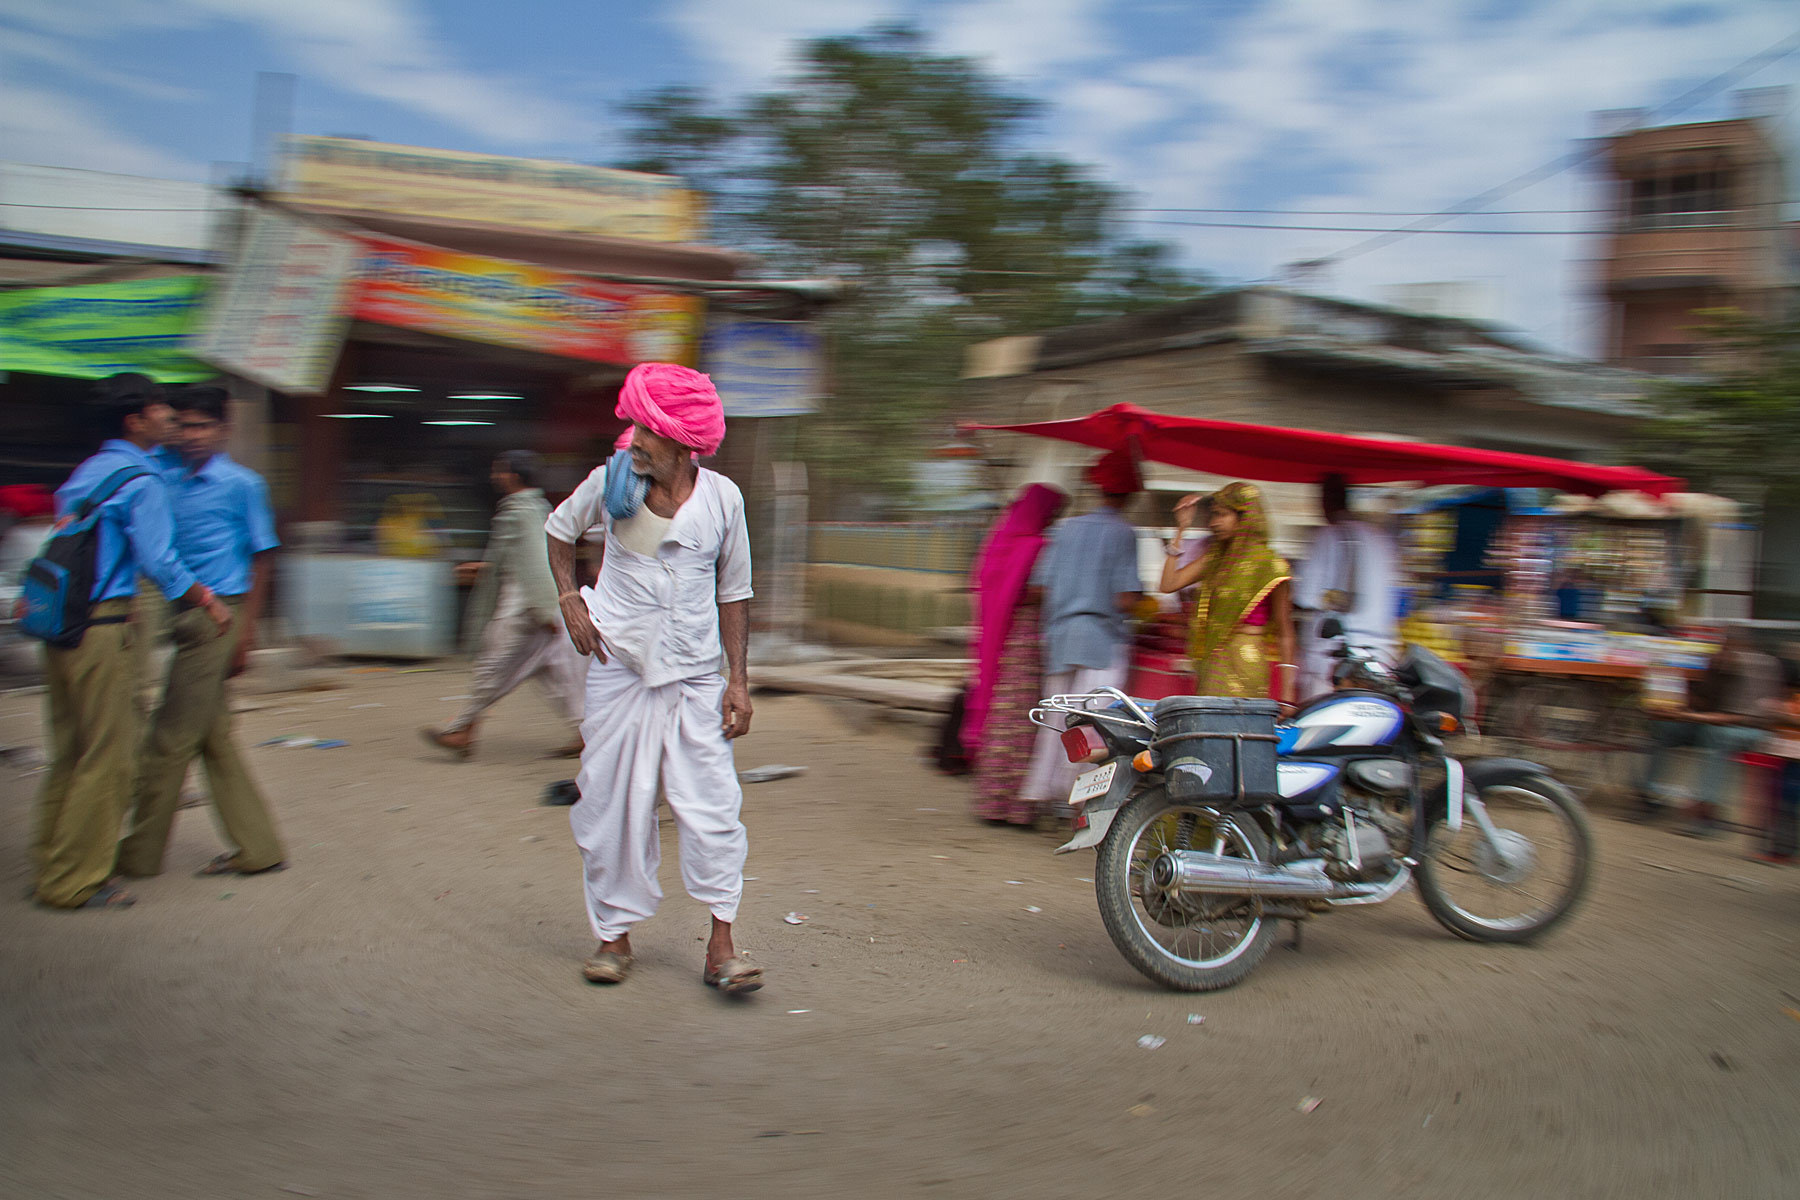 Photograph Man with Pink Turban - India in Motion - Rural Rajastan - India by Sandy Gennrich on 500px